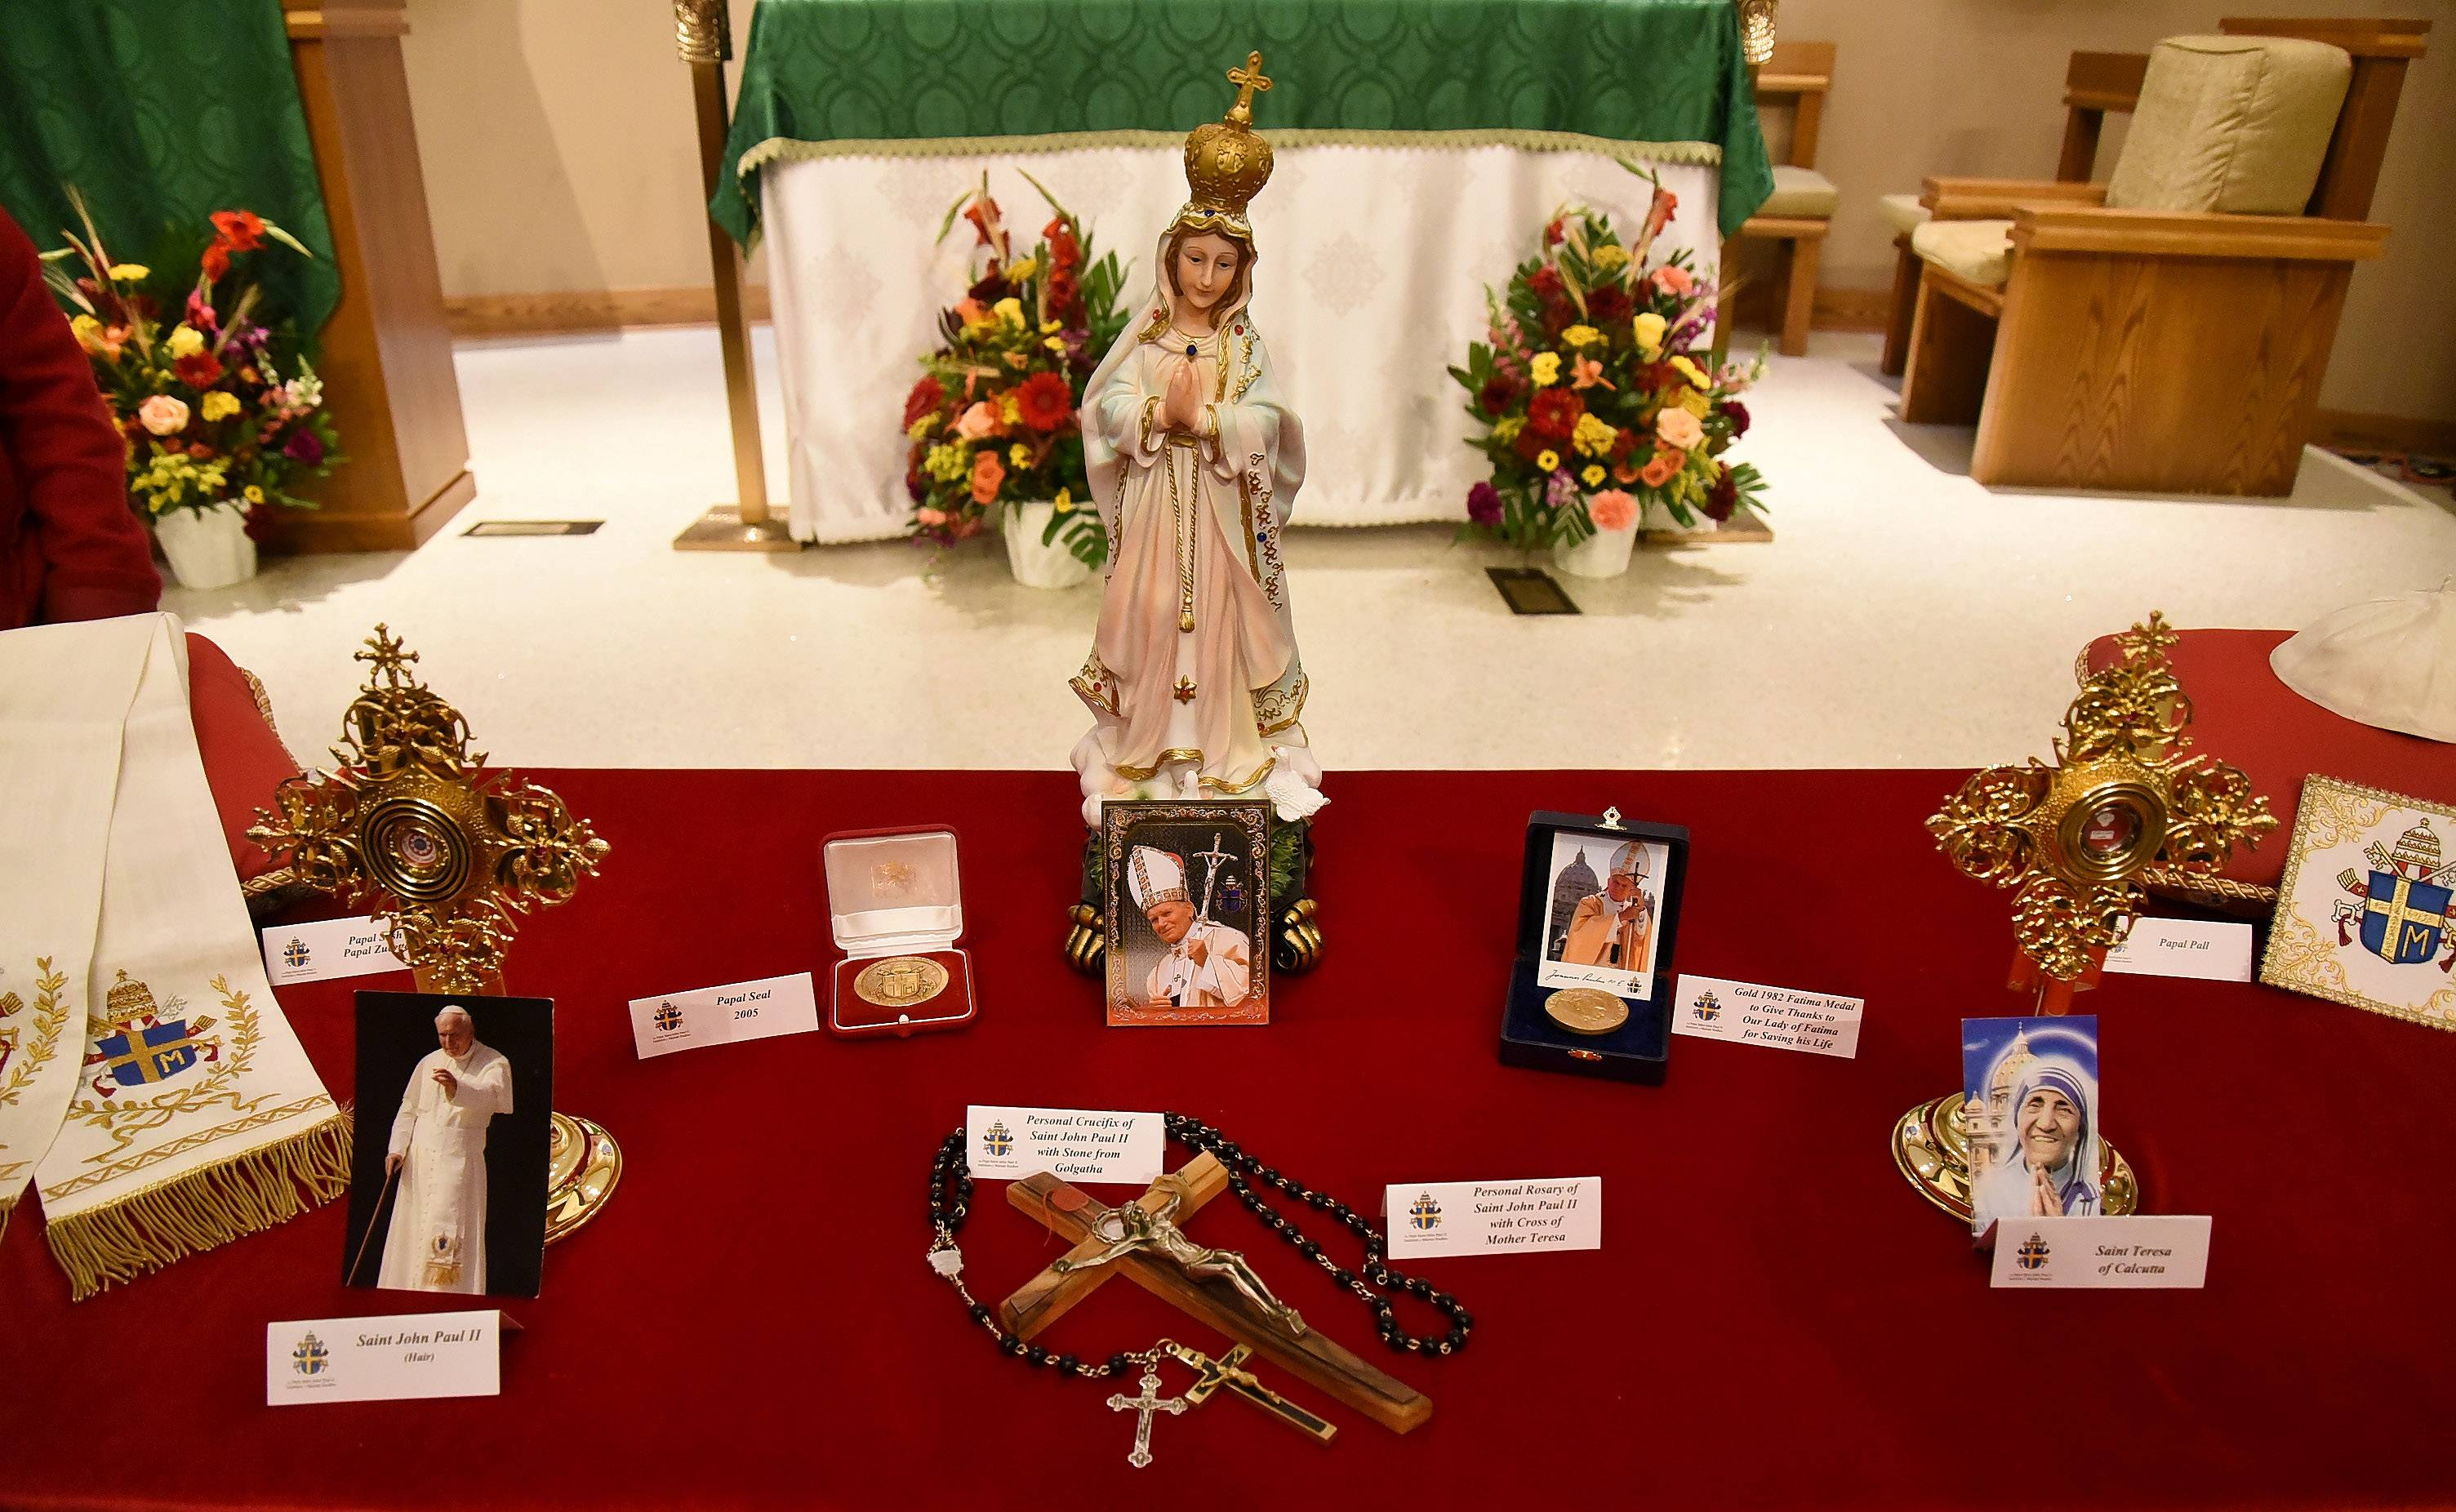 In honor of the 100th anniversary of the Apparitions of Our Lady of Fatima, relics of Pope St. John Paul II, and other saints, were on display at the Our Lady of Guadalupe Shrine in Des Plaines Wednesday.